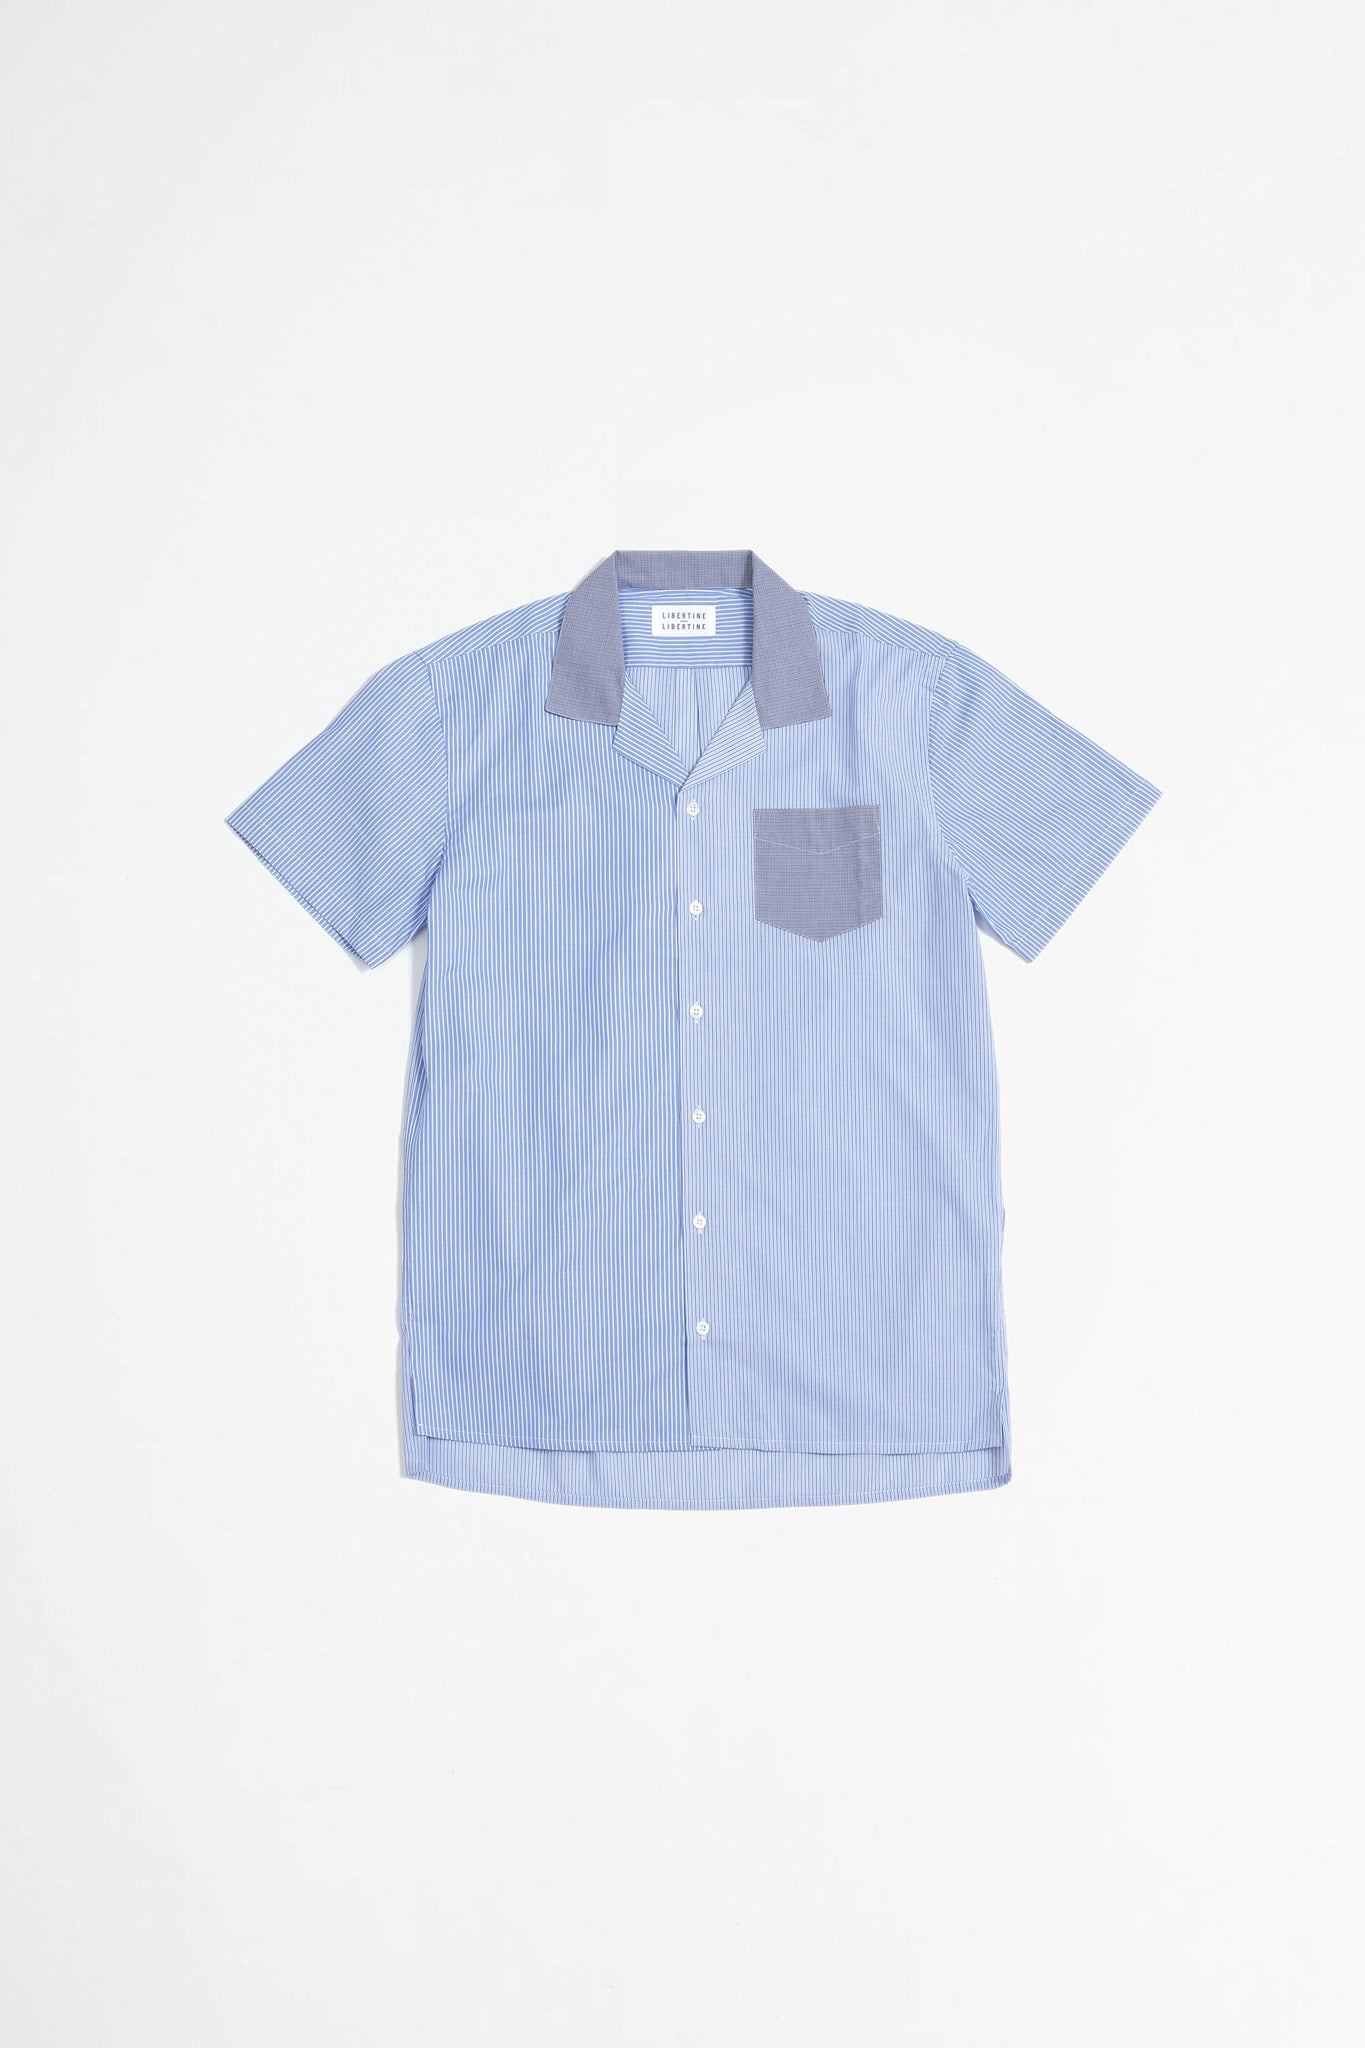 Cave S/S shirt stripe mix 2